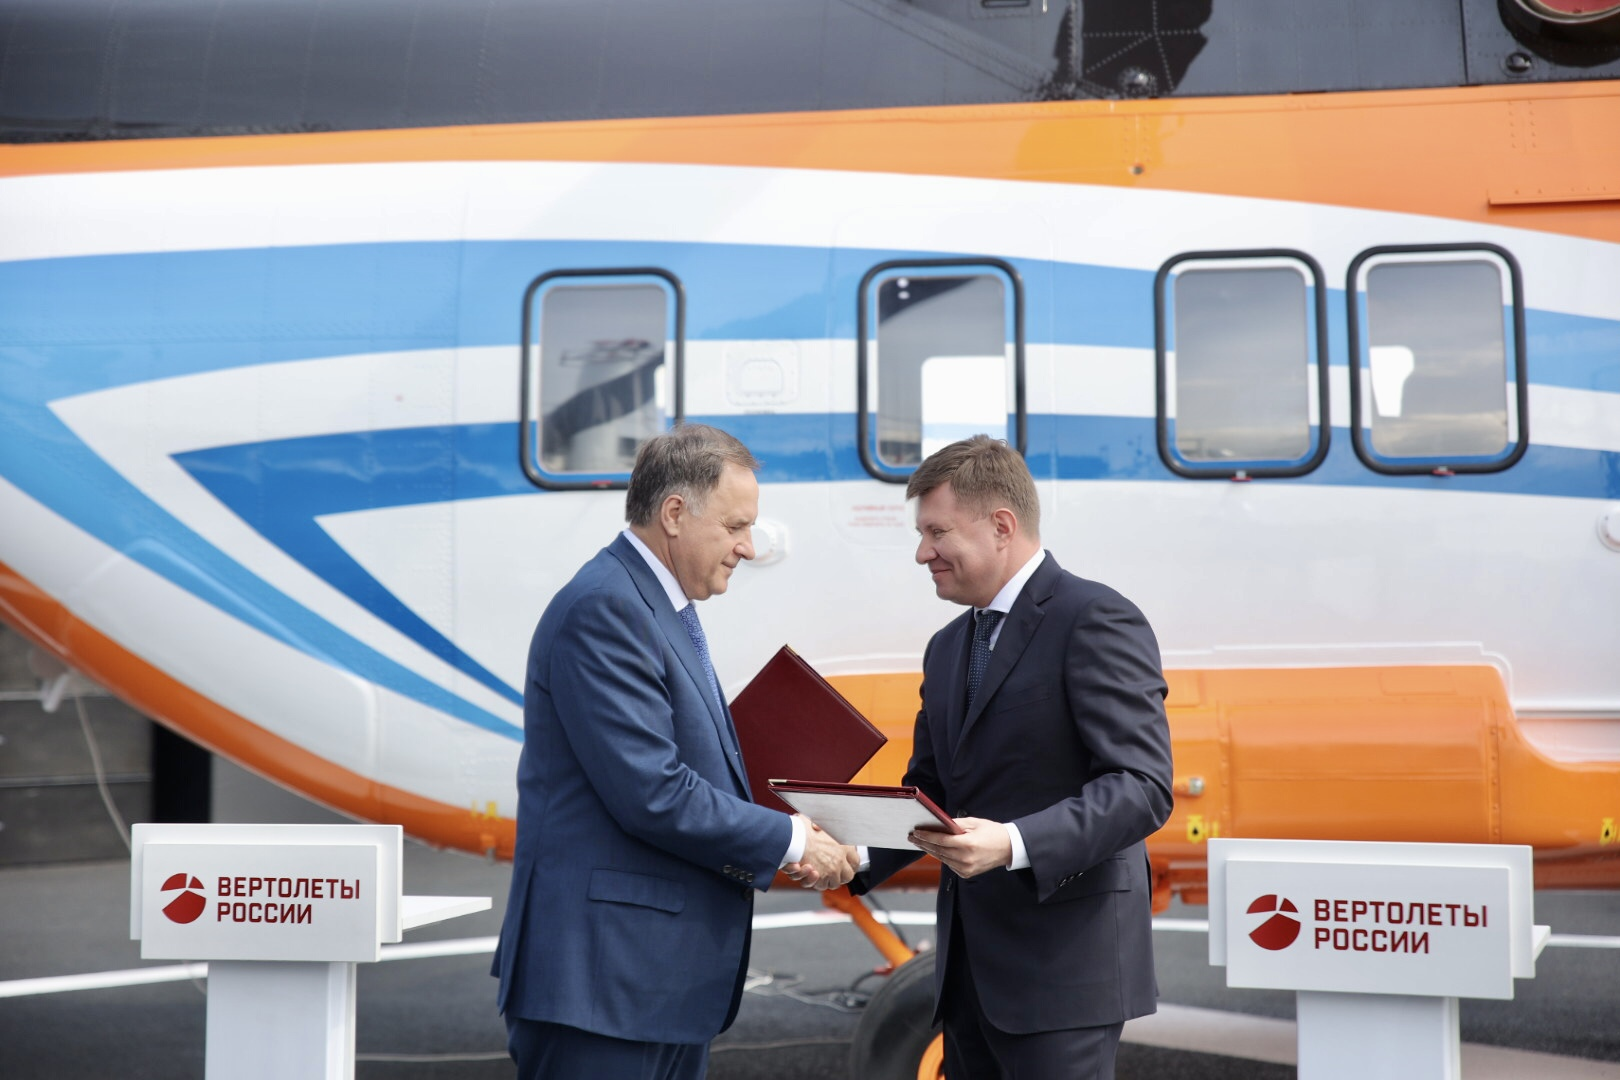 Russian Helicopters and VTB will cooperate in the field of civil helicopter construction